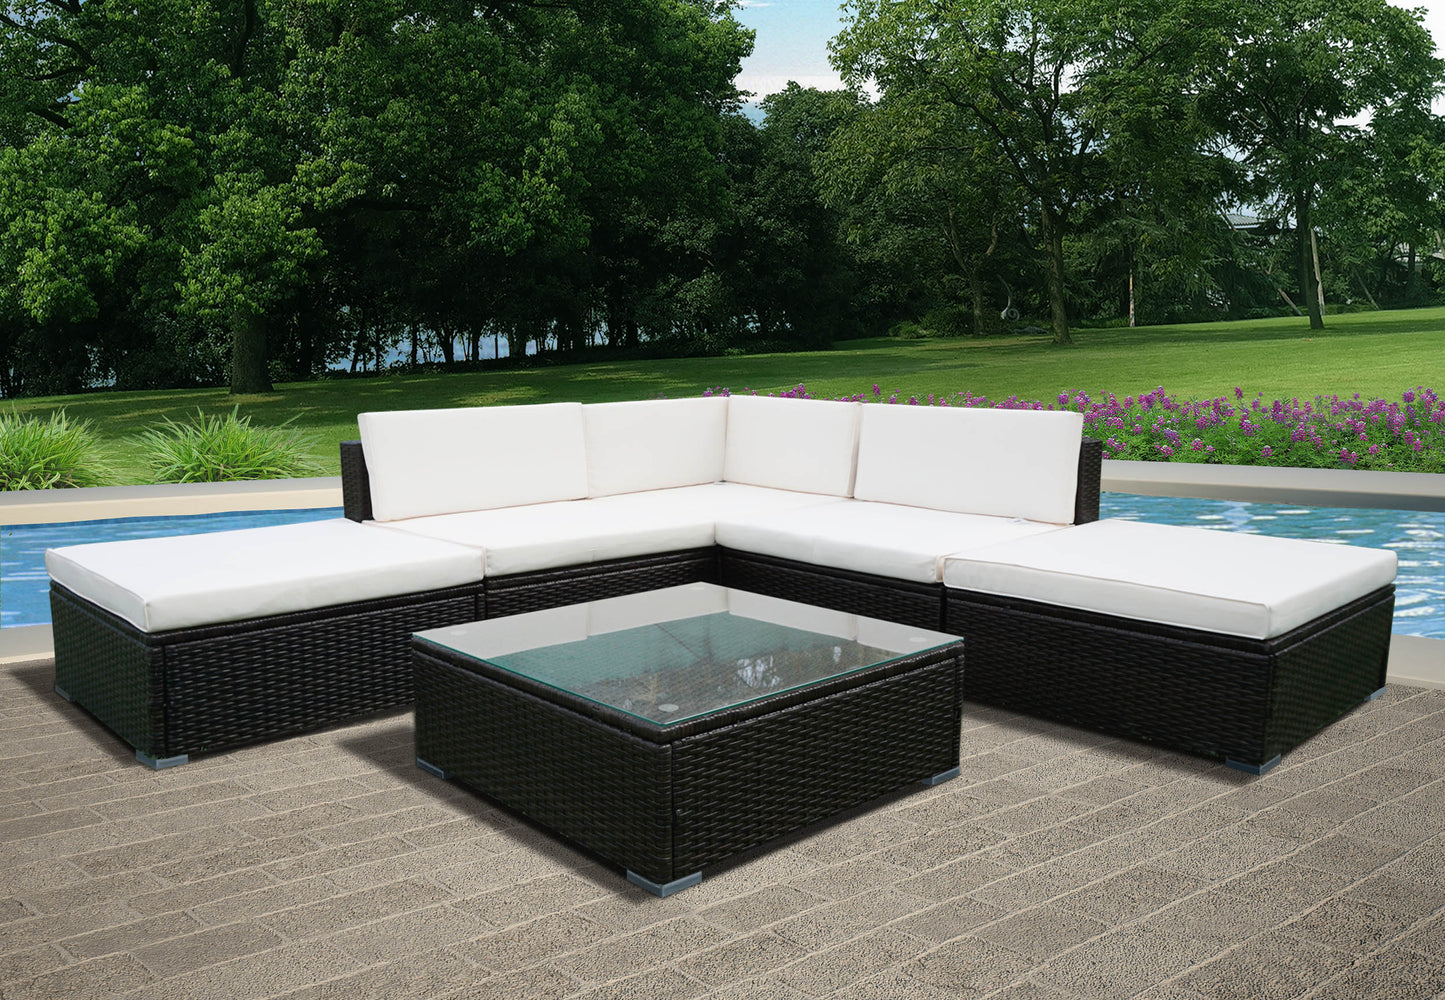 Panana 6PCS Rattan Outdoor Garden Corner Sofa Set